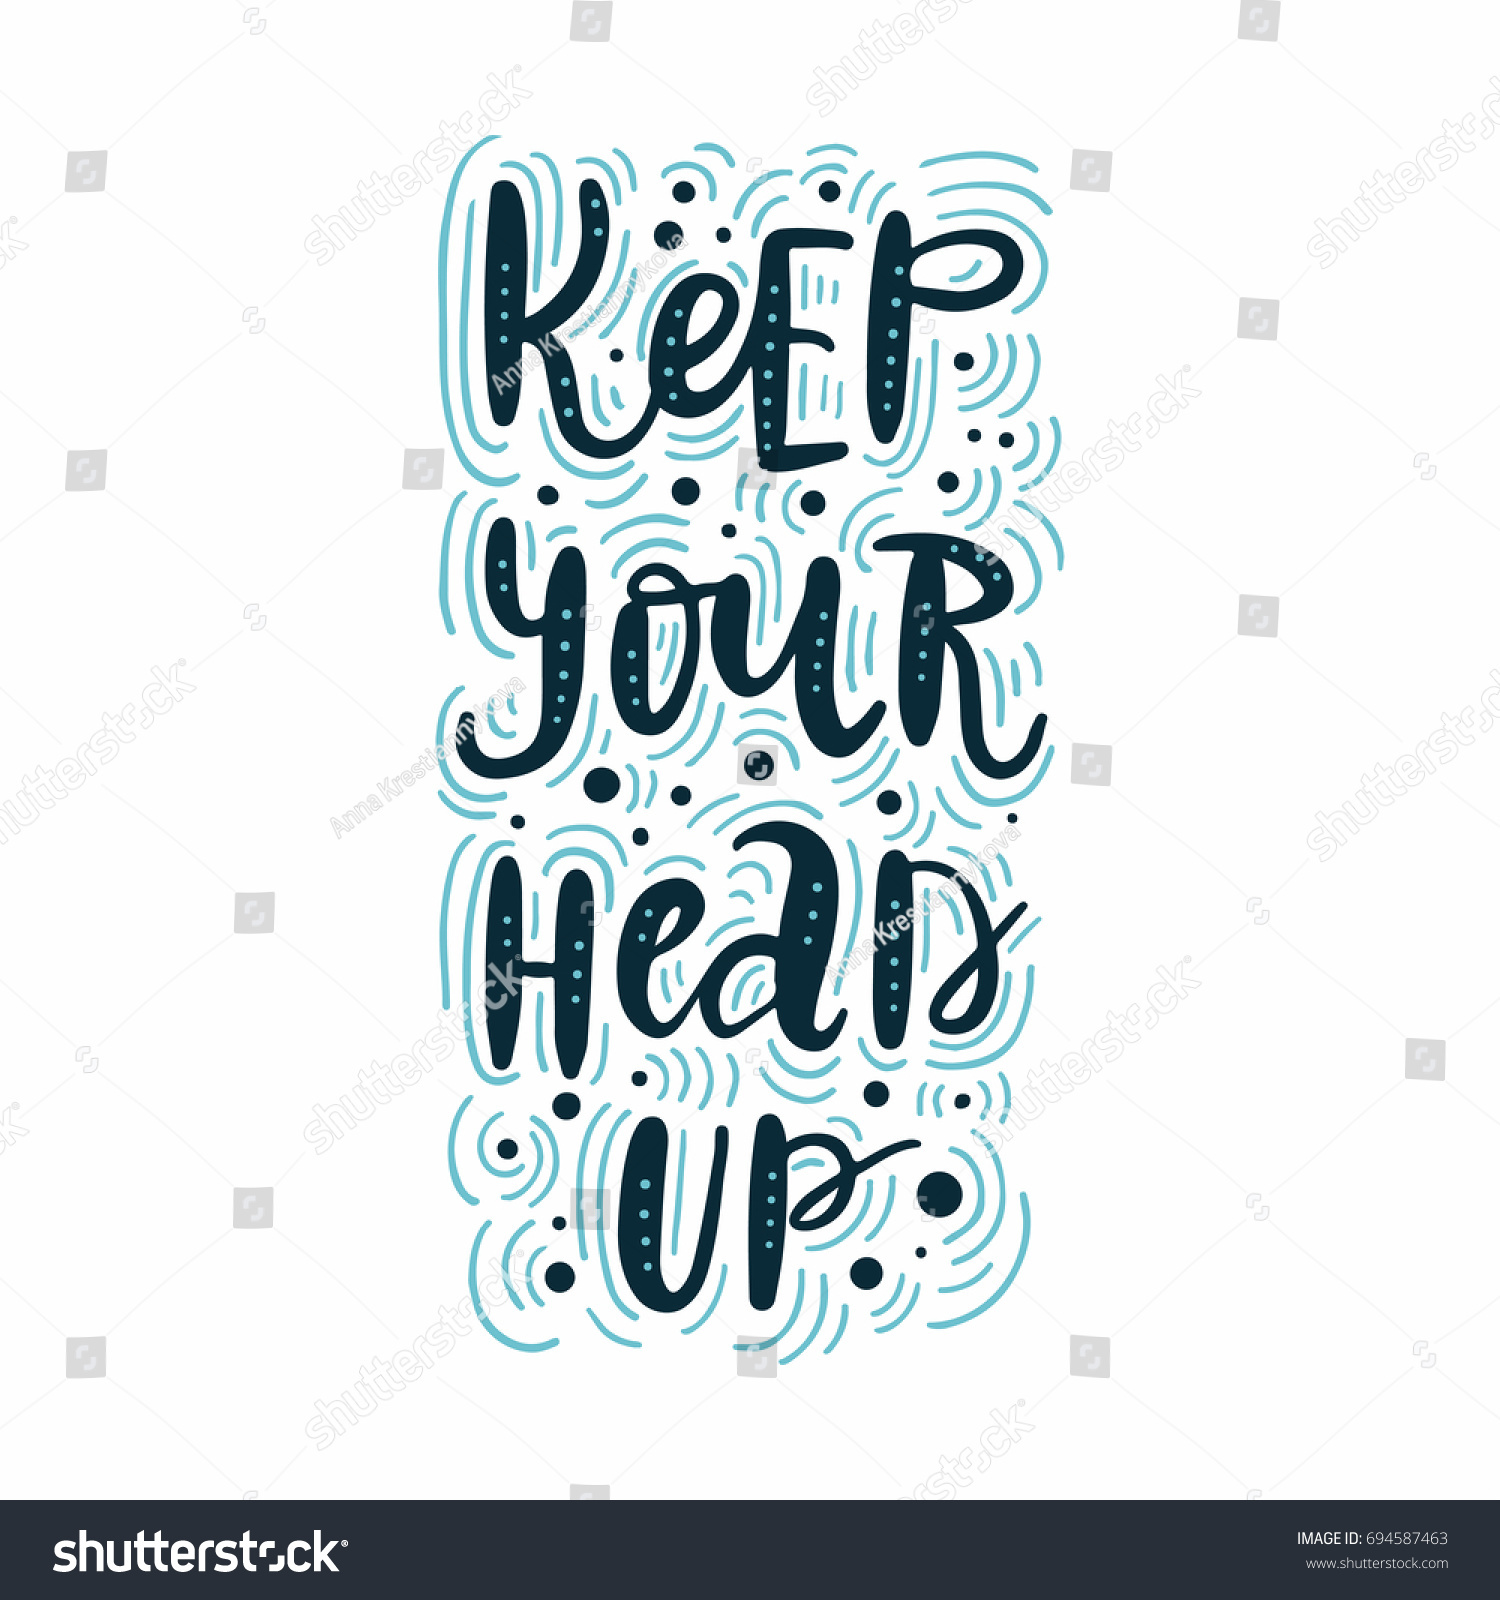 Keep Your Head Up Vector Poster Stock Vector Royalty Free